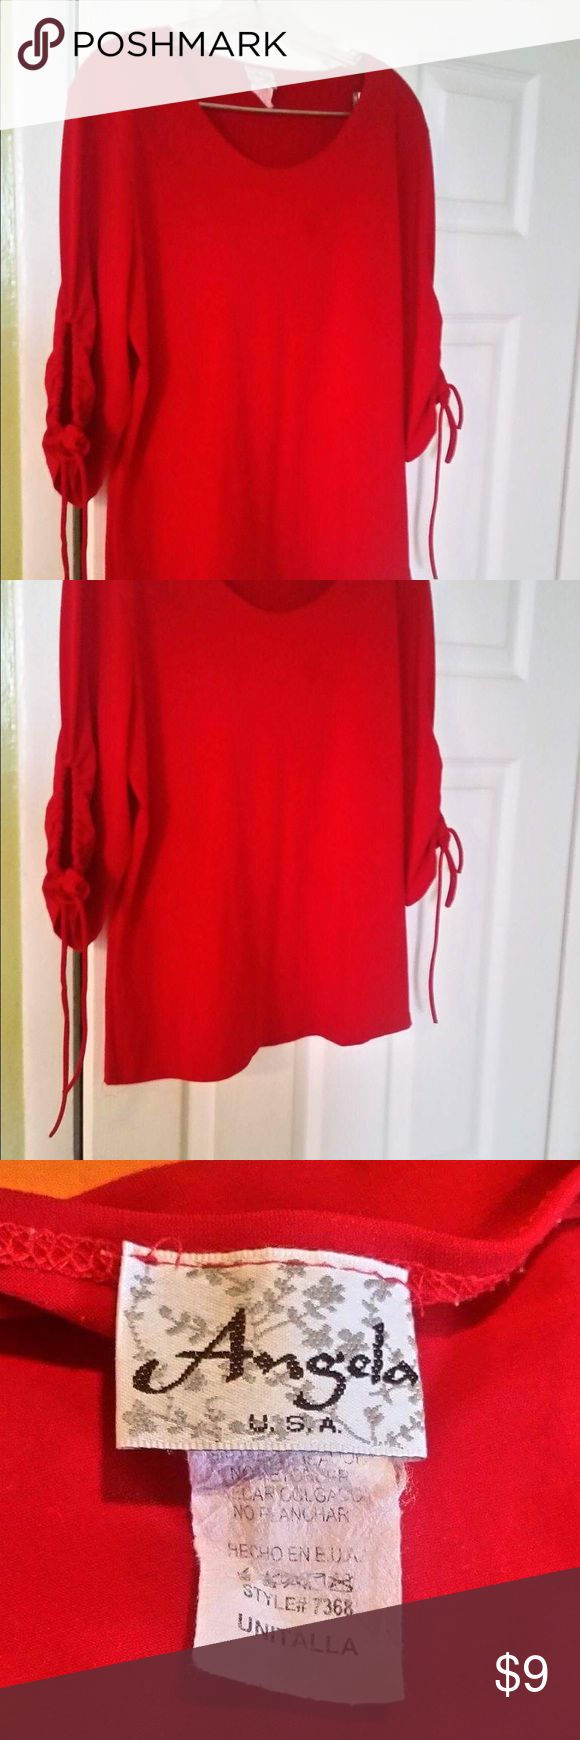 Last Price Drop - Red Blouse Red Blouse 👚 perfect with some jeans. Gently used. Angela Tops Blouses